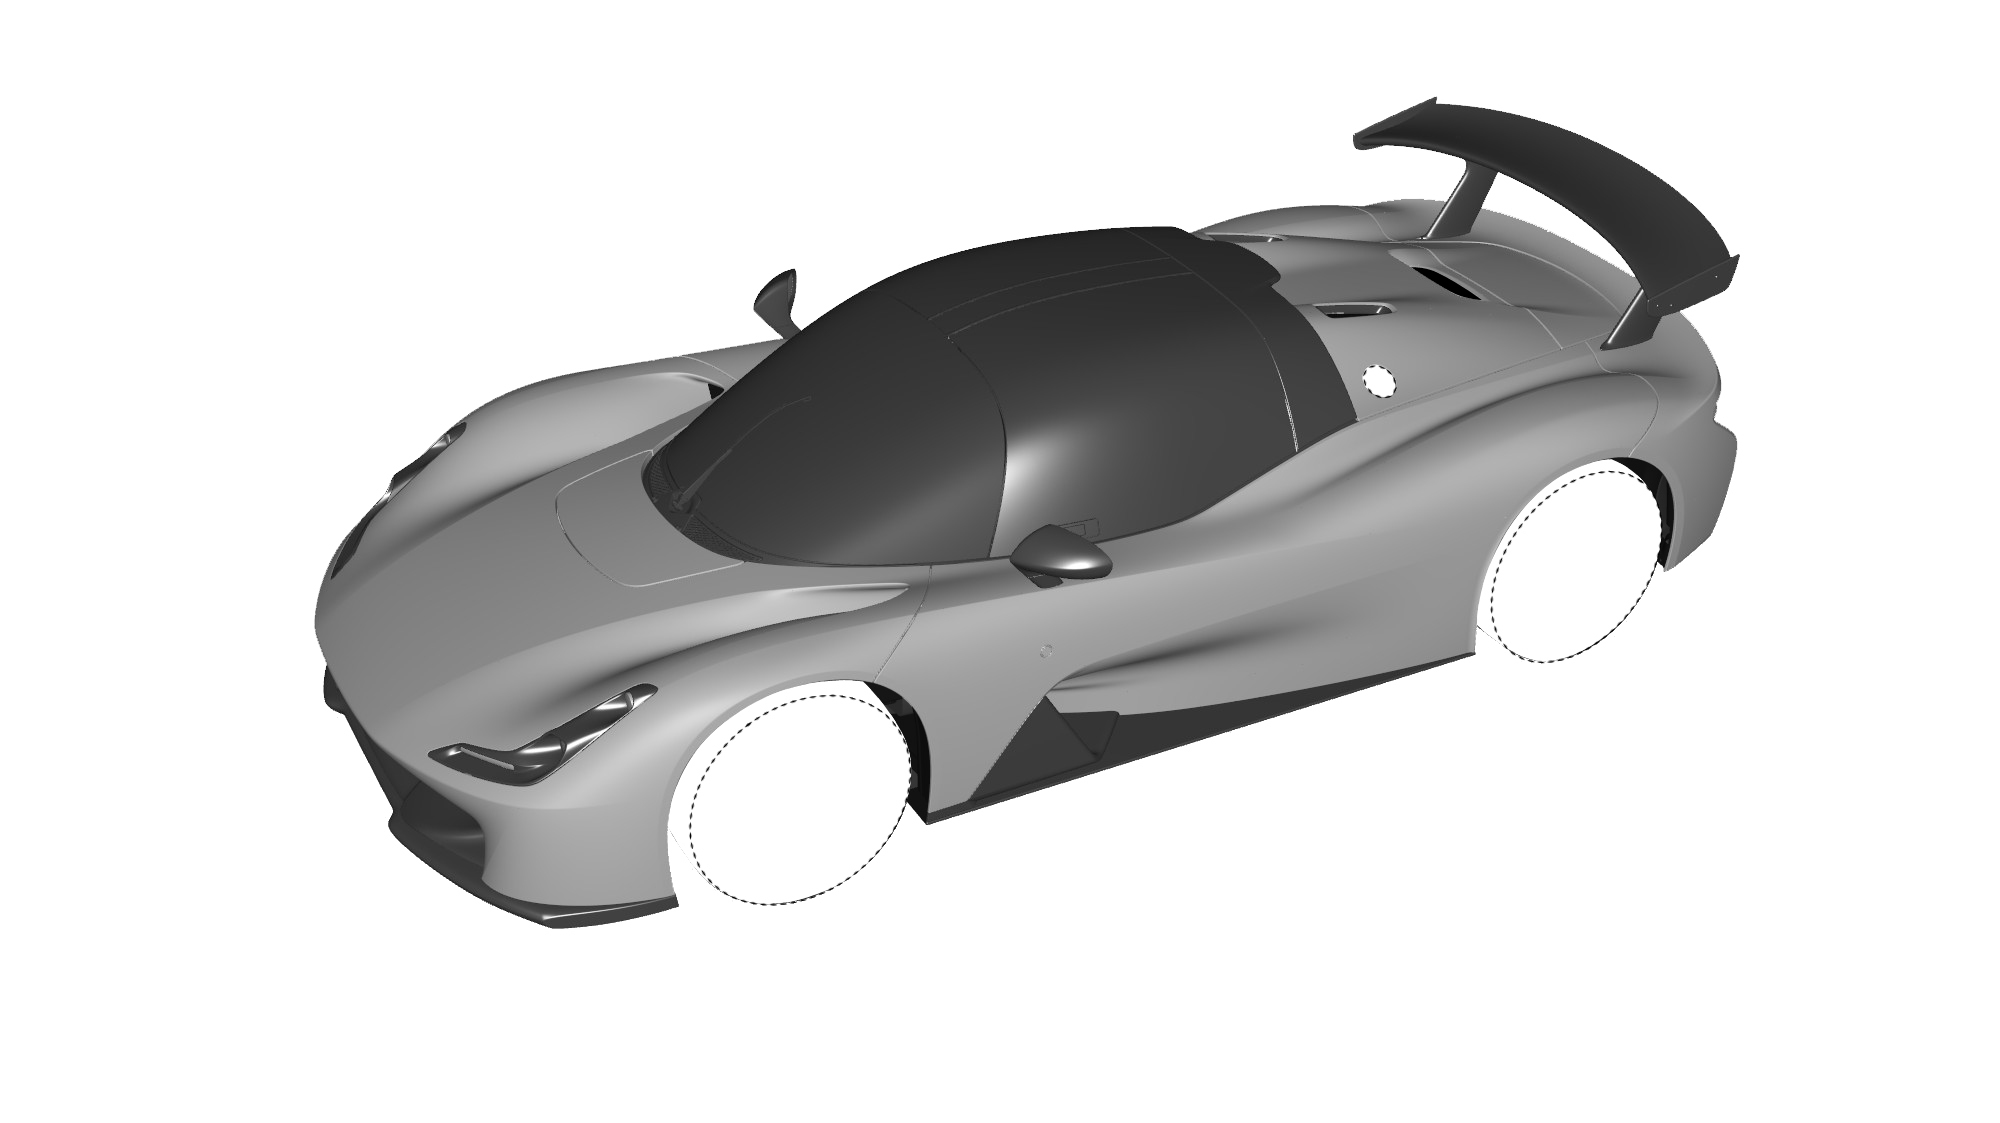 Dallara Stradale Design Sketches (17)